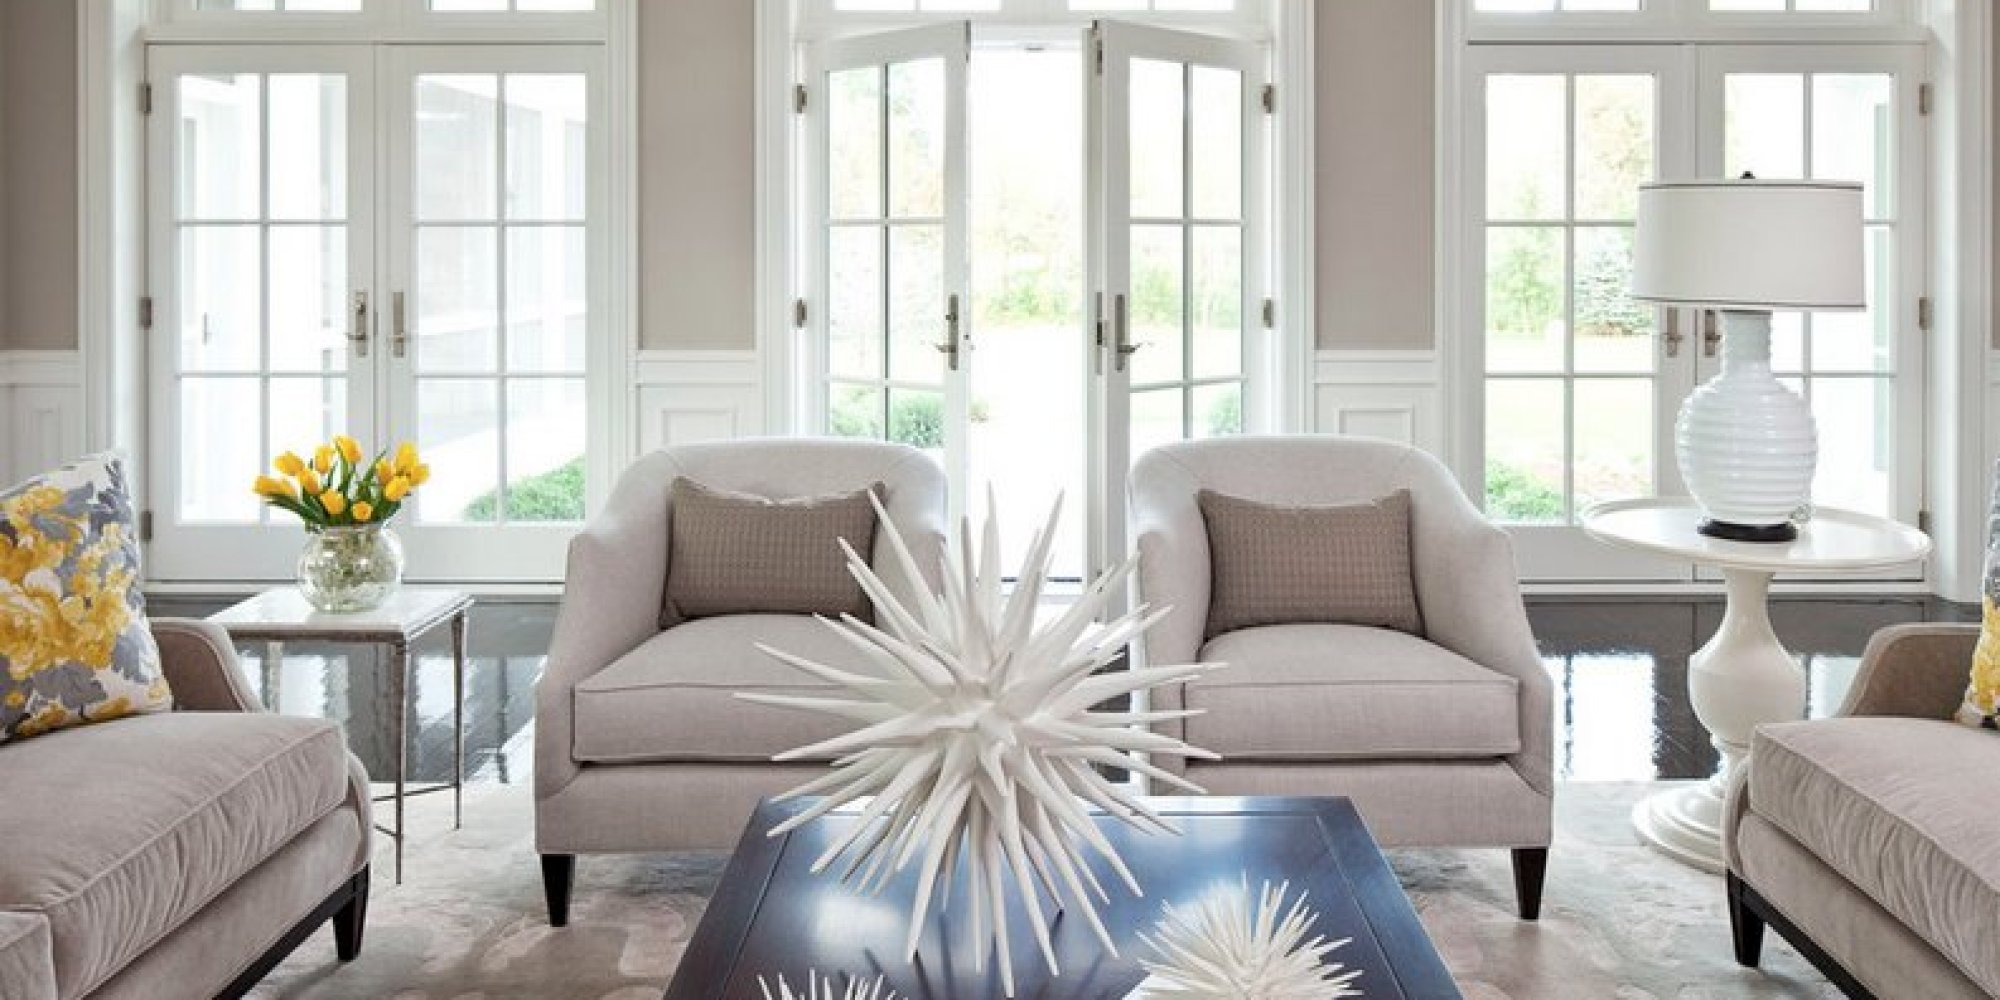 The 8 Best Neutral Paint Colors Thatu0027ll Work In Any Home, No Matter The  Style (PHOTOS) | HuffPost